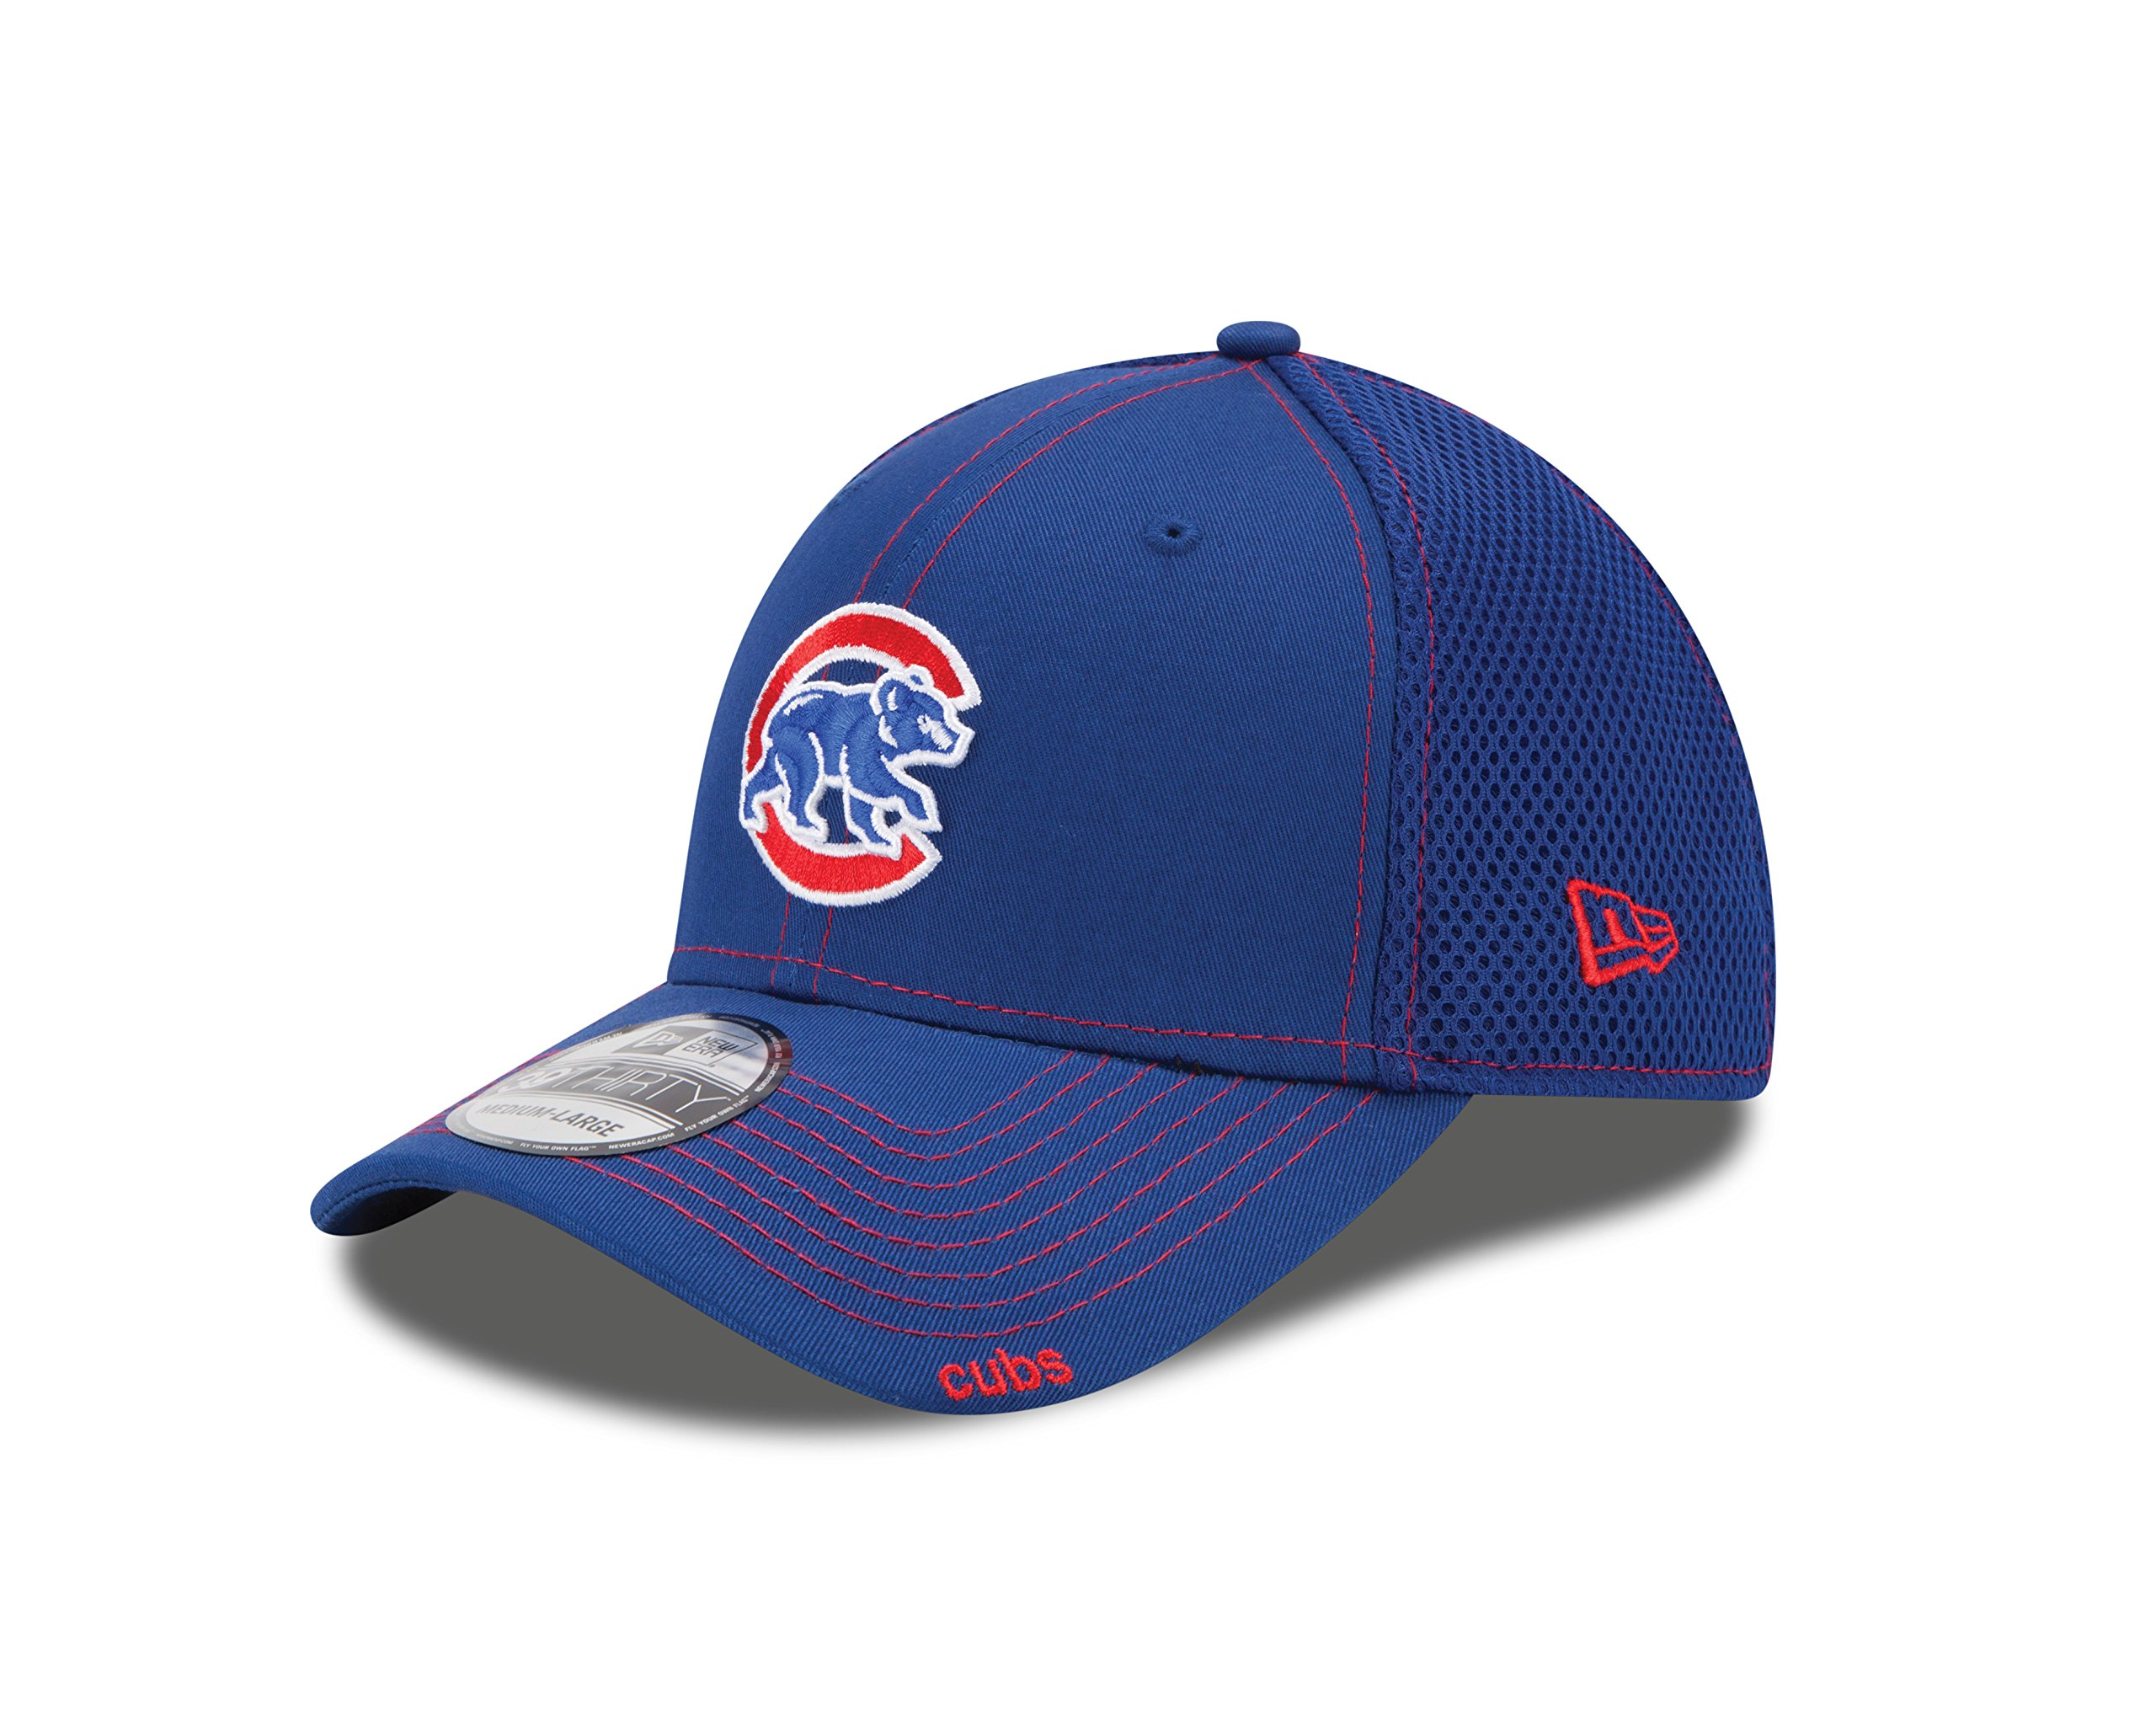 MLB Chicago Cubs Alternate 2014 NEO 39Thirty Stretch Fit Cap, Blue, Large/X-Large